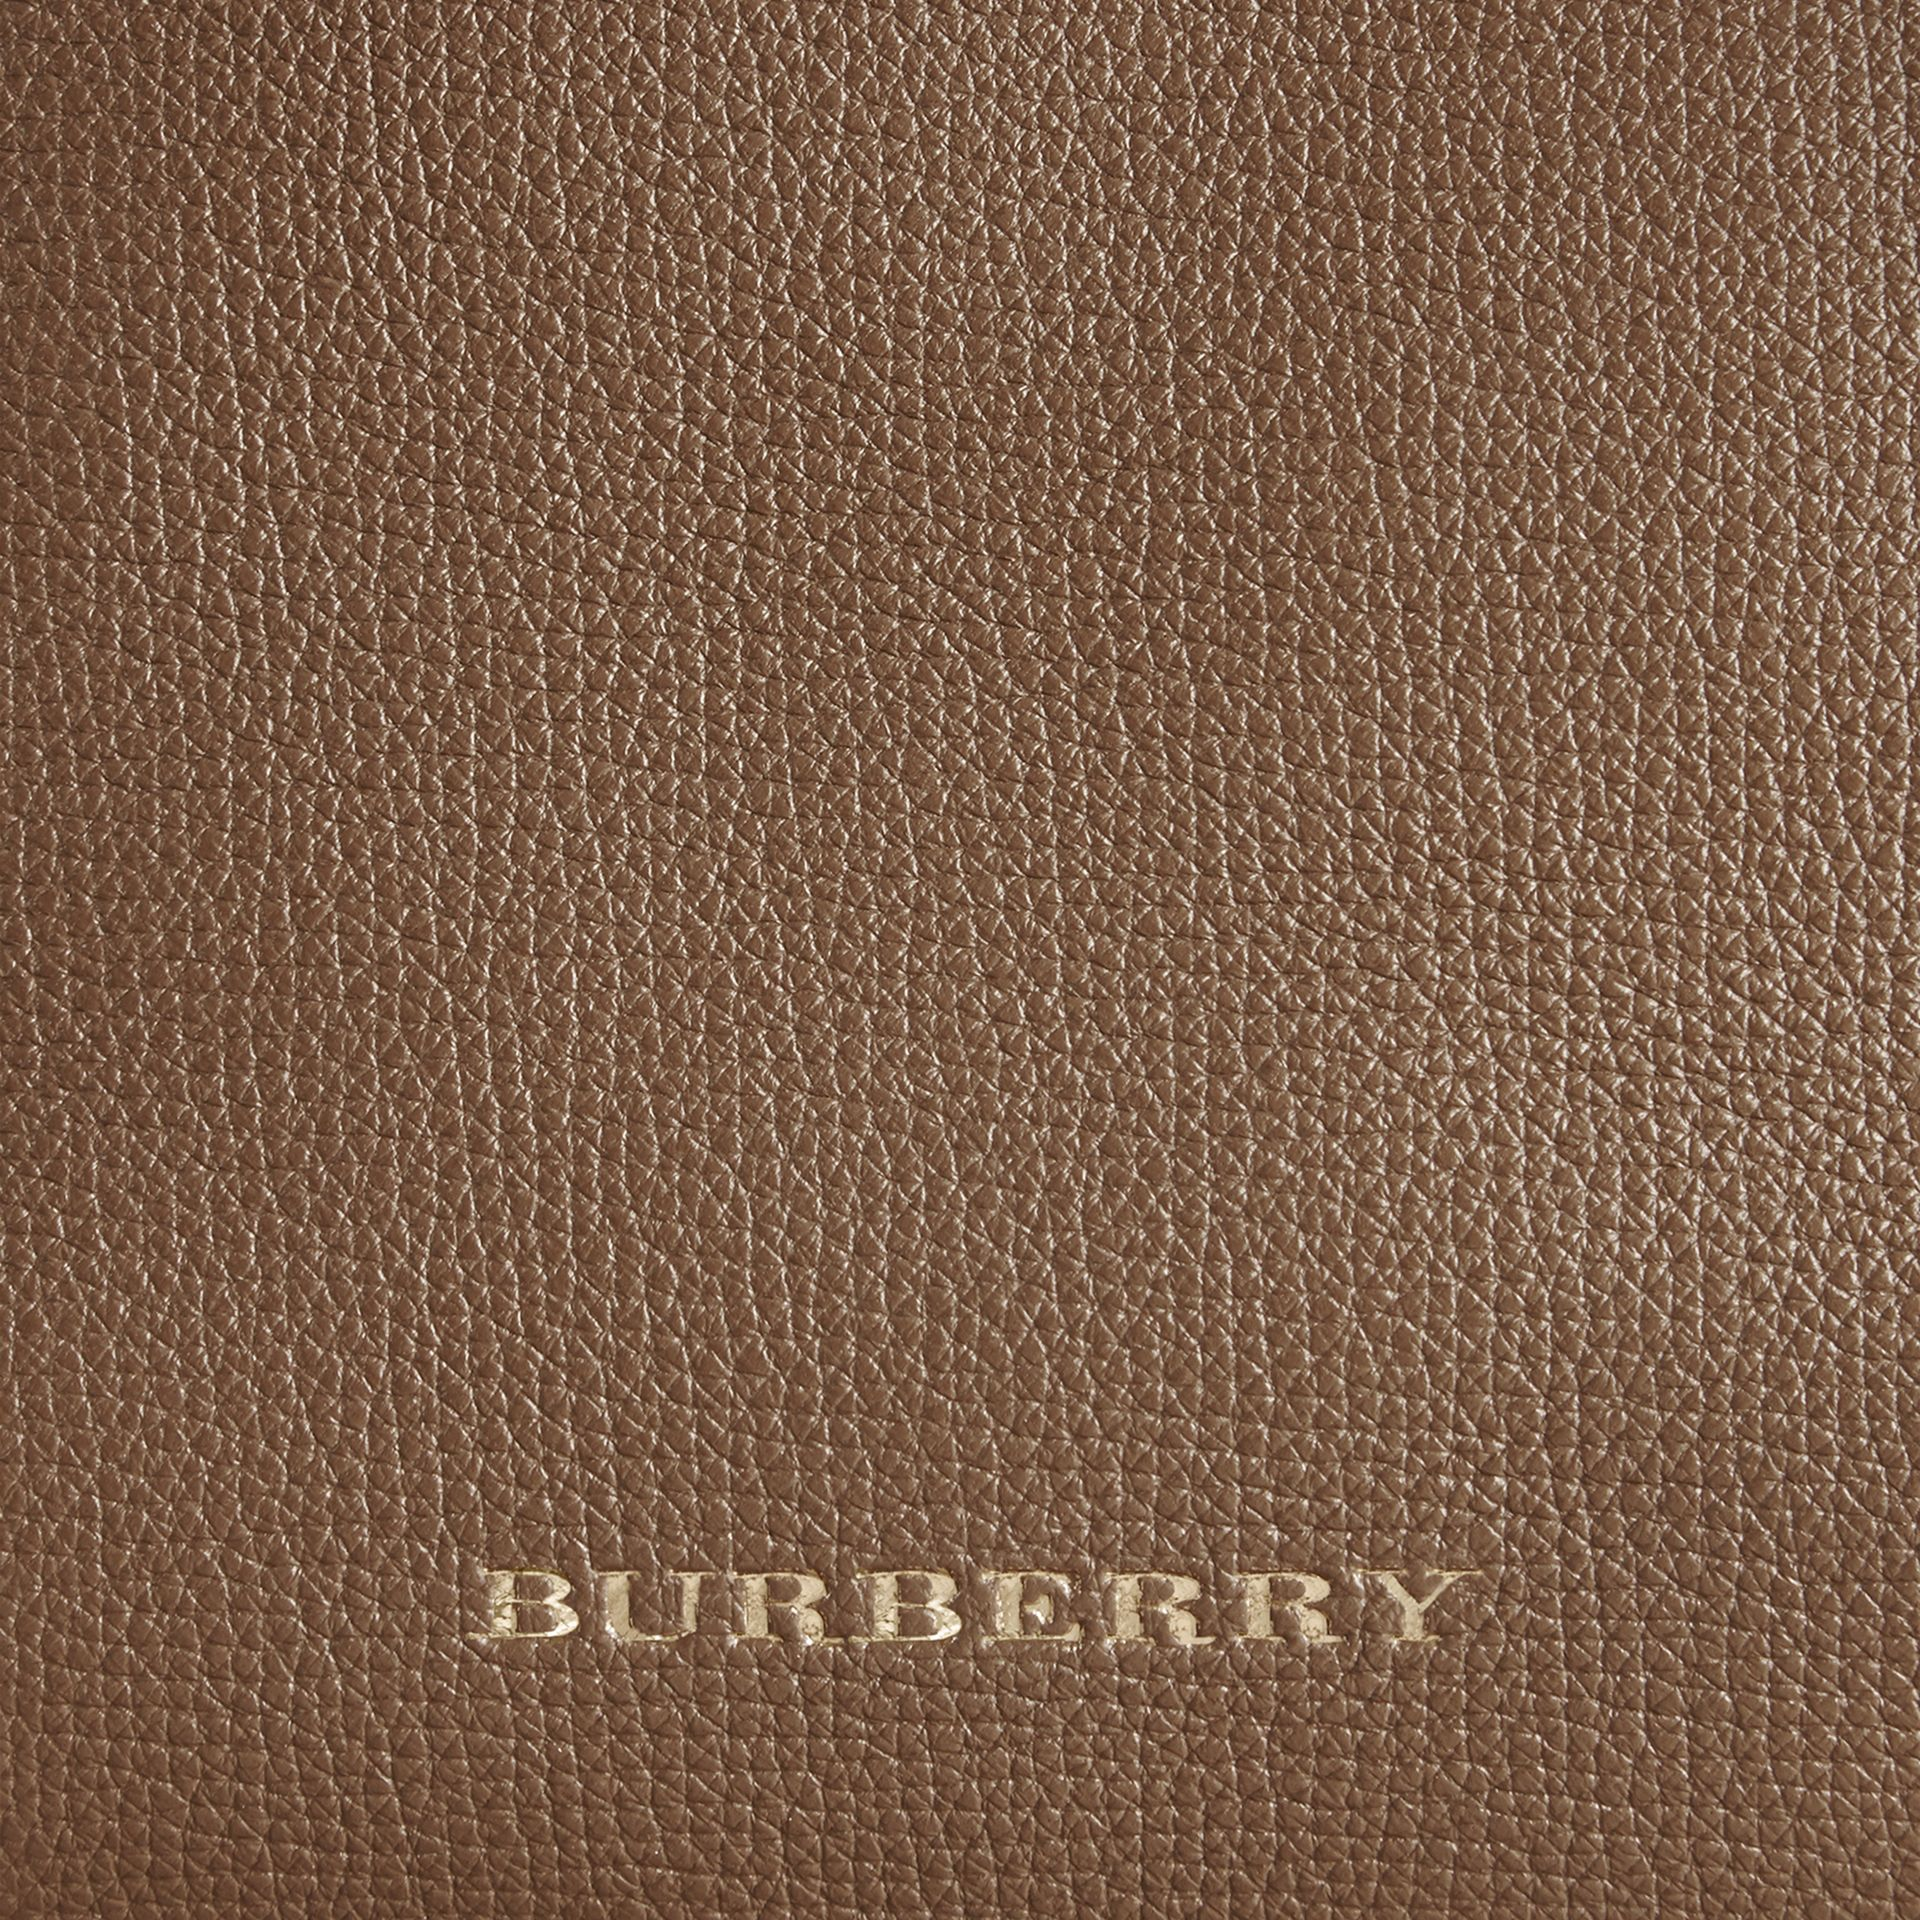 House Check and Leather Baby Changing Bag in Taupe Grey | Burberry Australia - gallery image 2